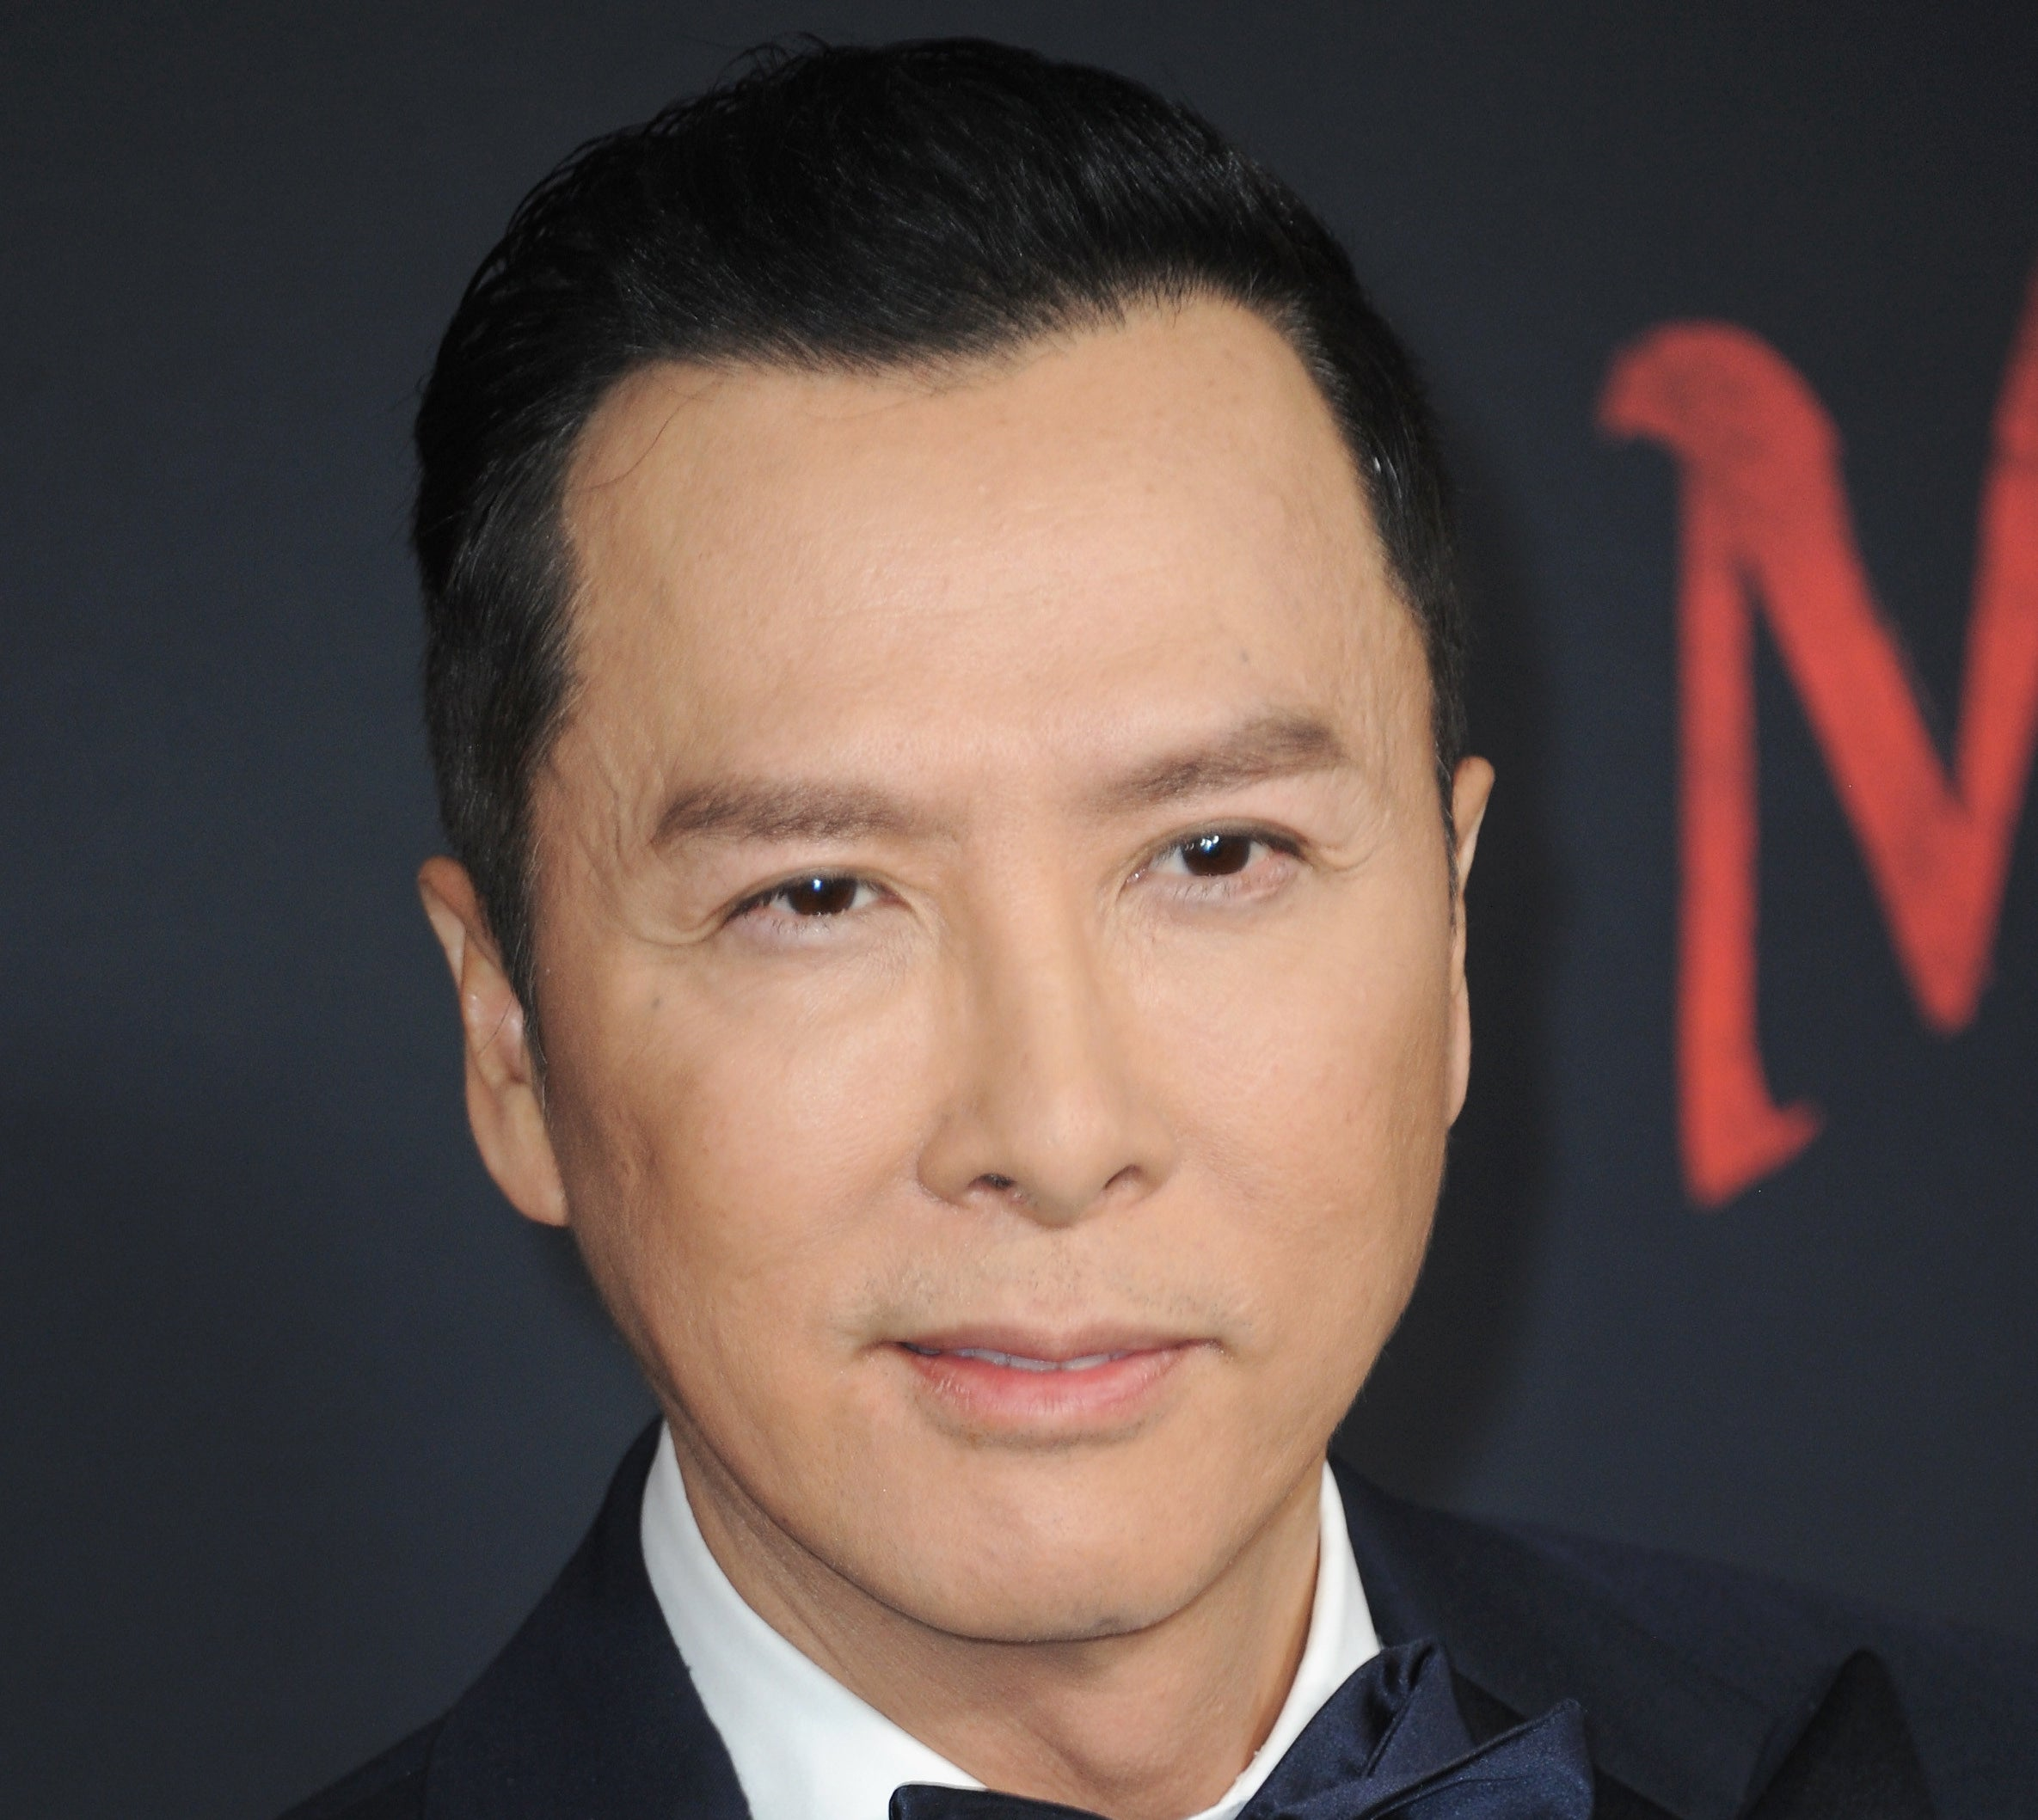 Donnie Yen looking quite serious